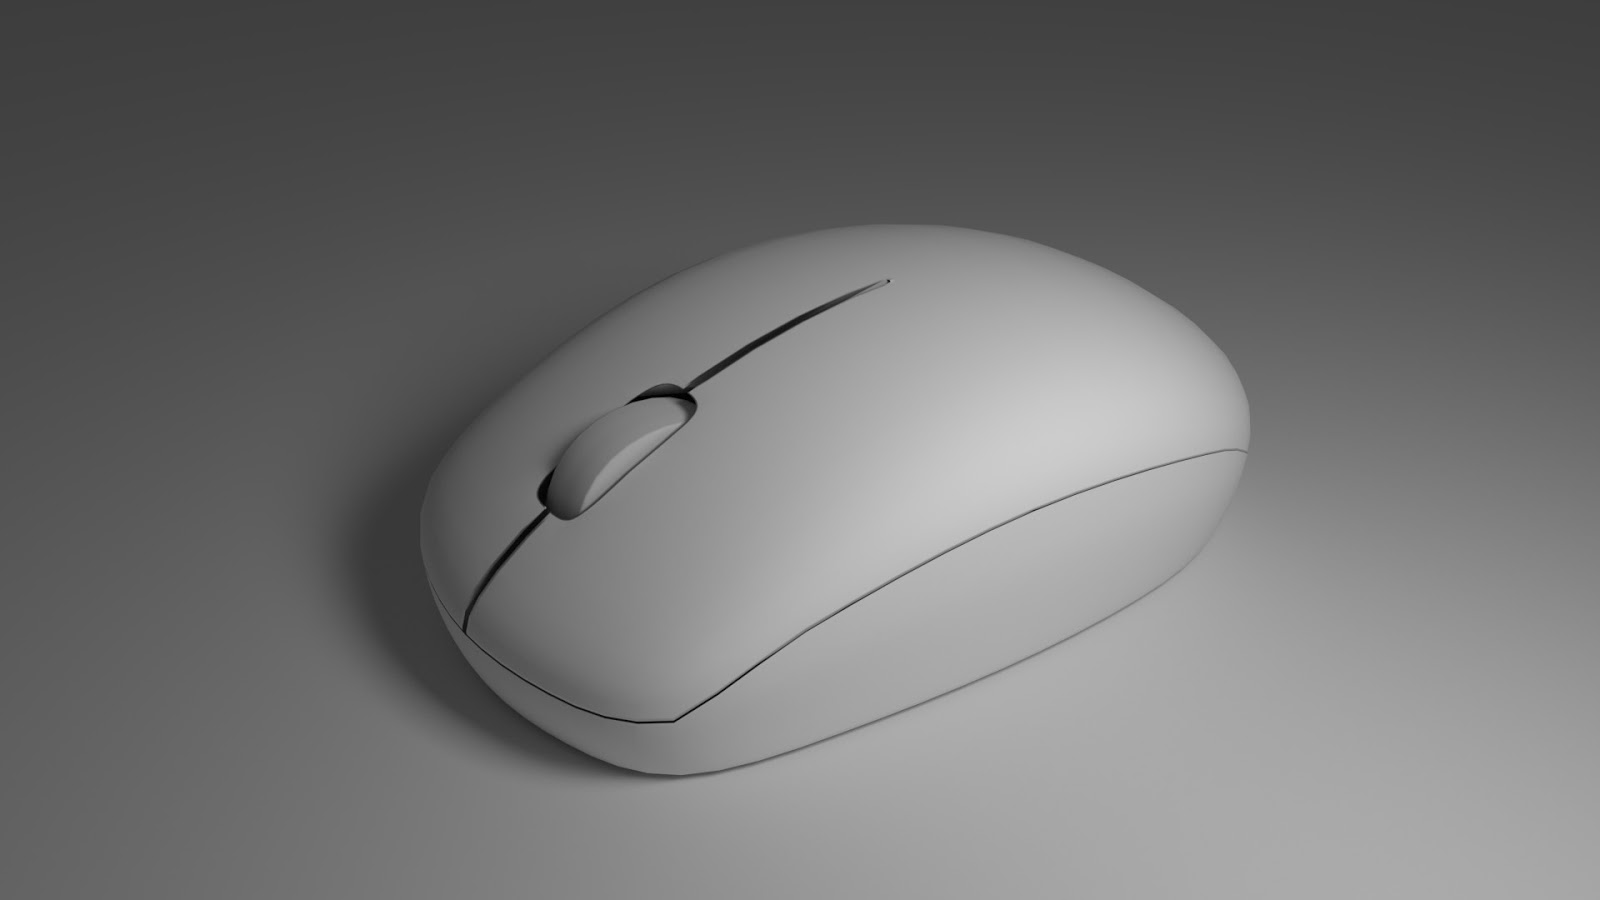 Free 3D Optical Mouse .blend file